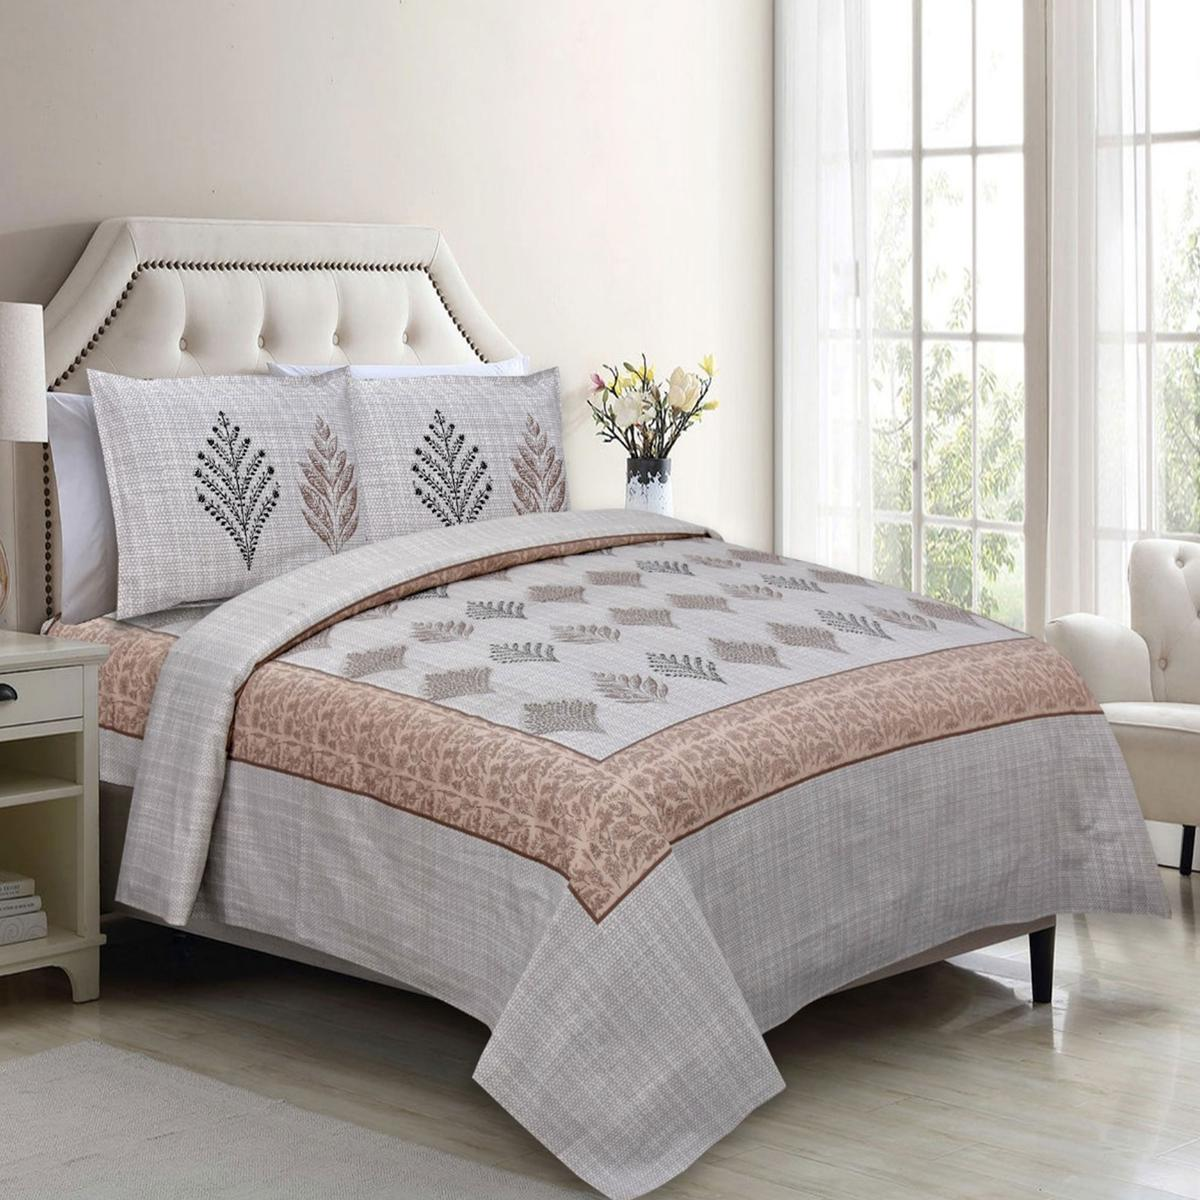 Diva Collection - Off White Colored Jaipuri Print Cotton Double Bedsheet with 2 Pillow Cover